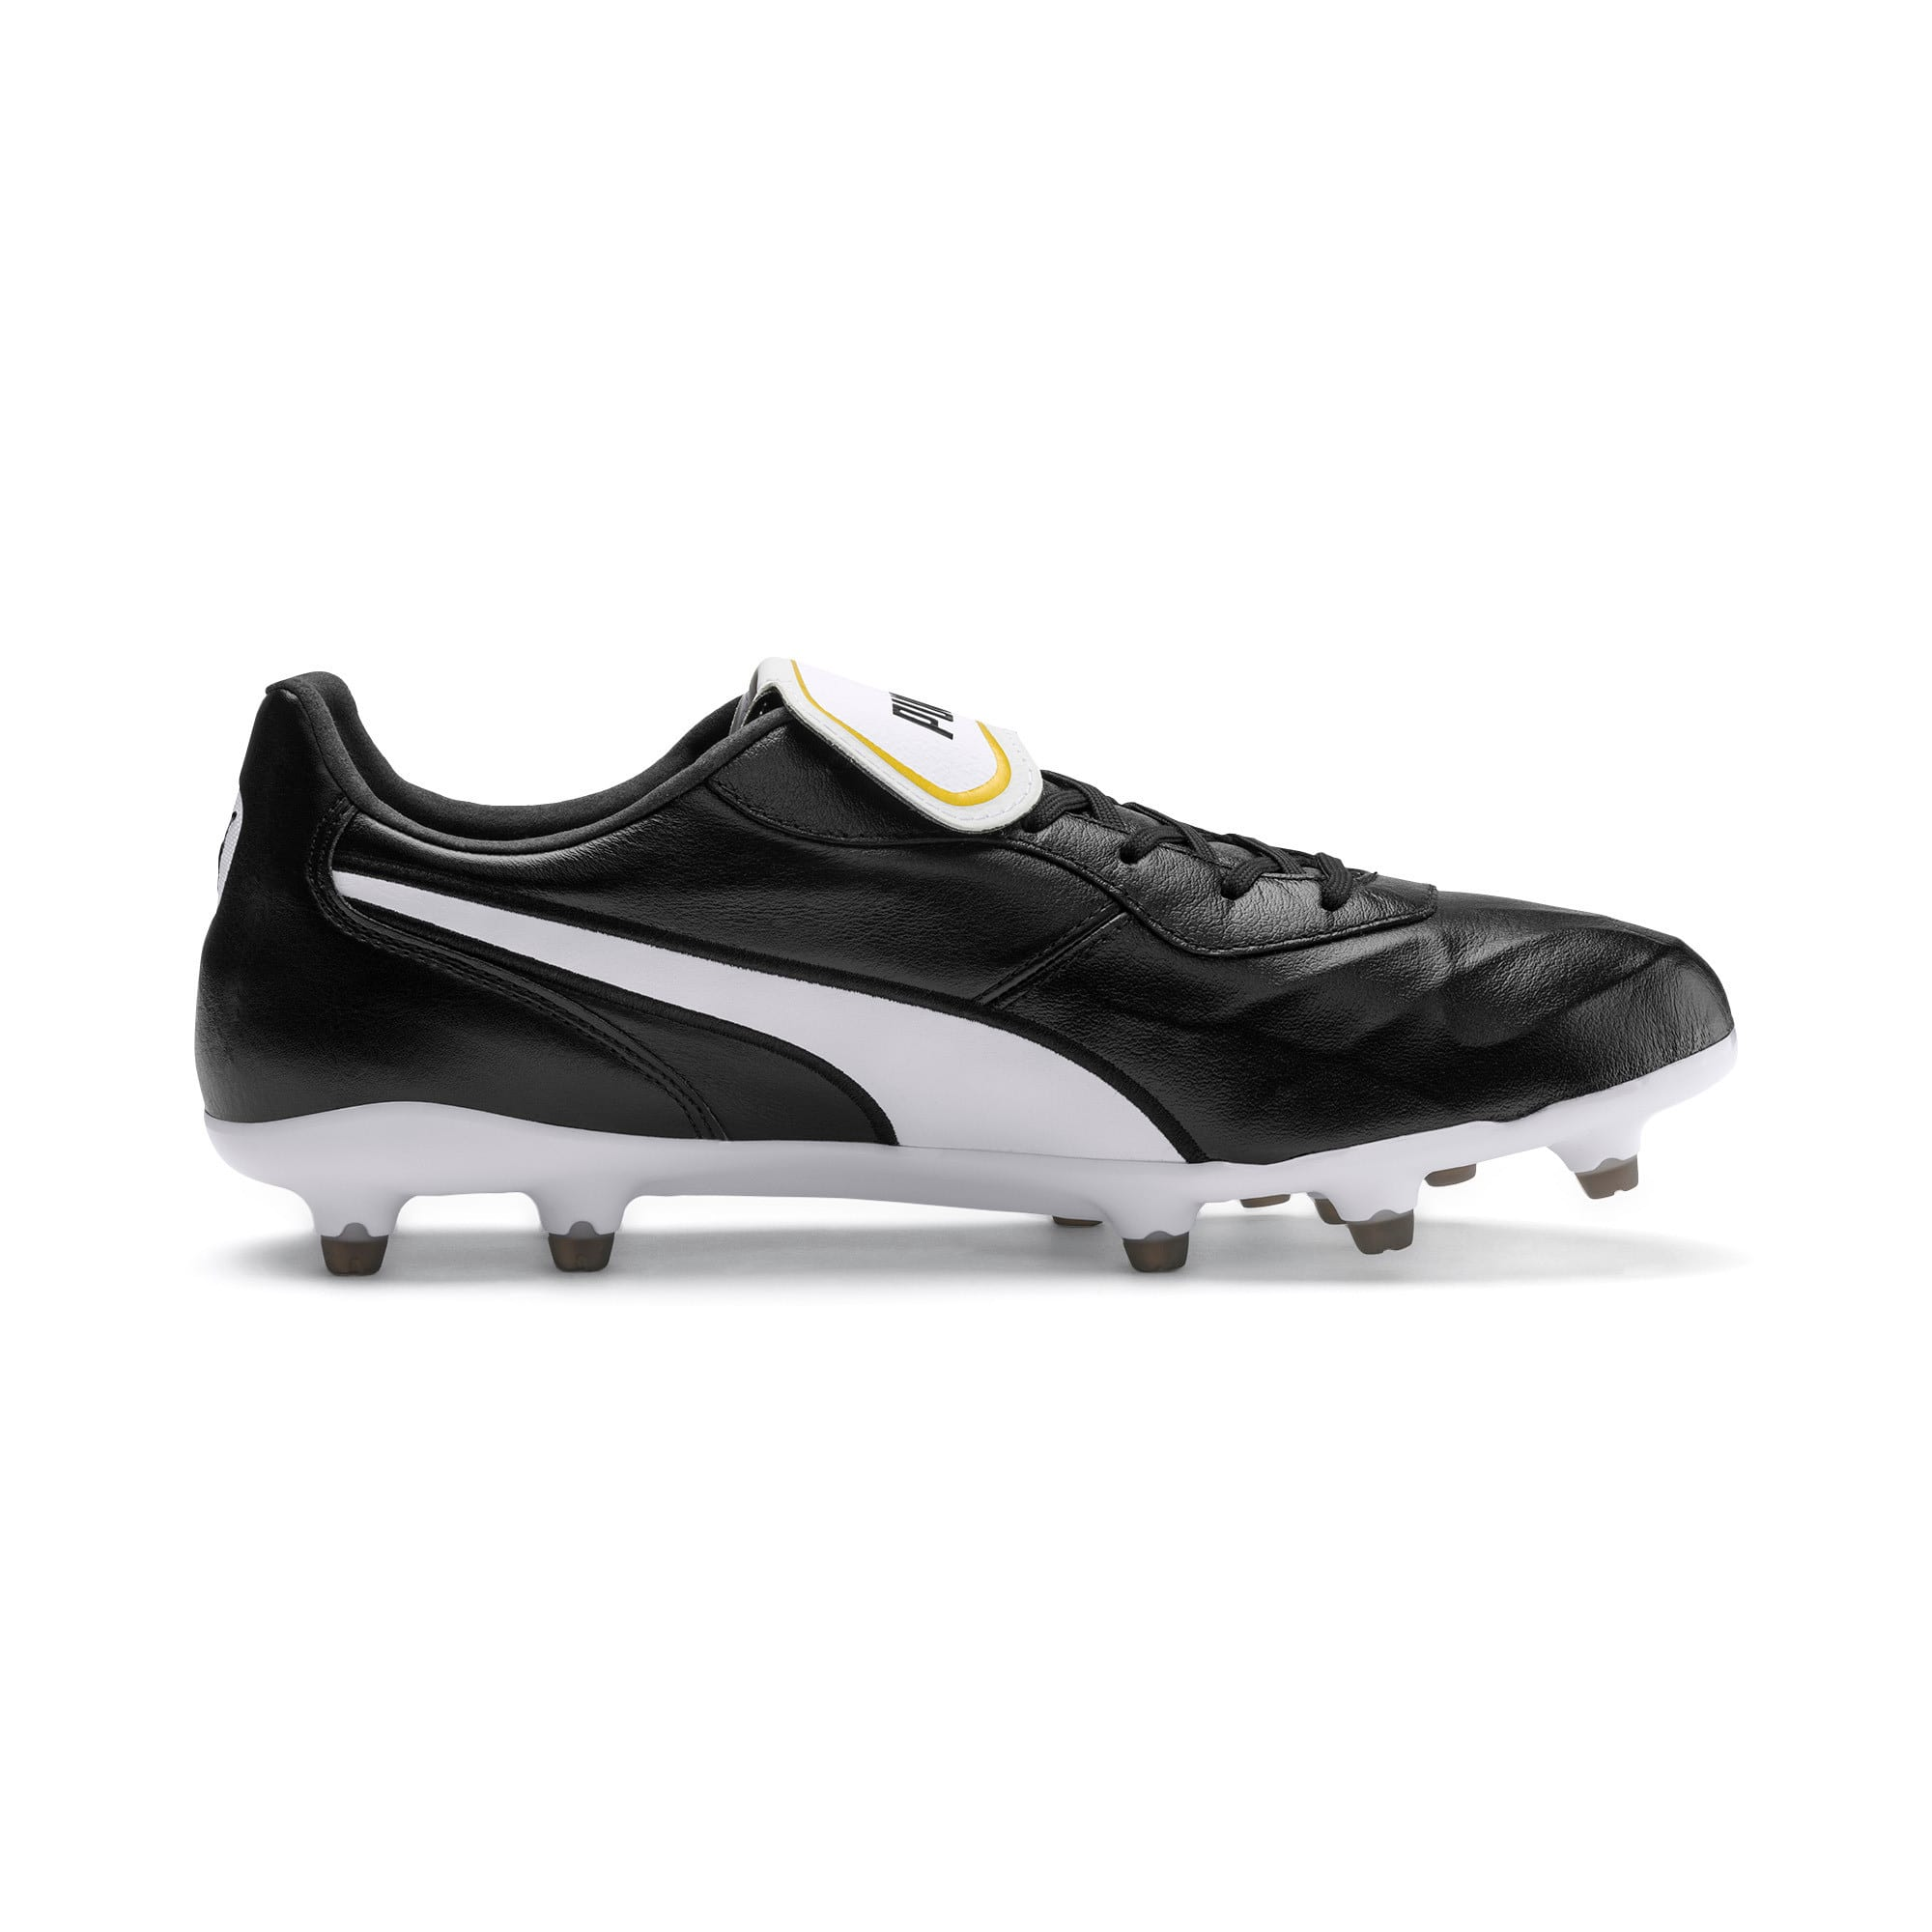 Thumbnail 6 van KING Top FG voetbalschoenen, Puma Black-Puma White, medium